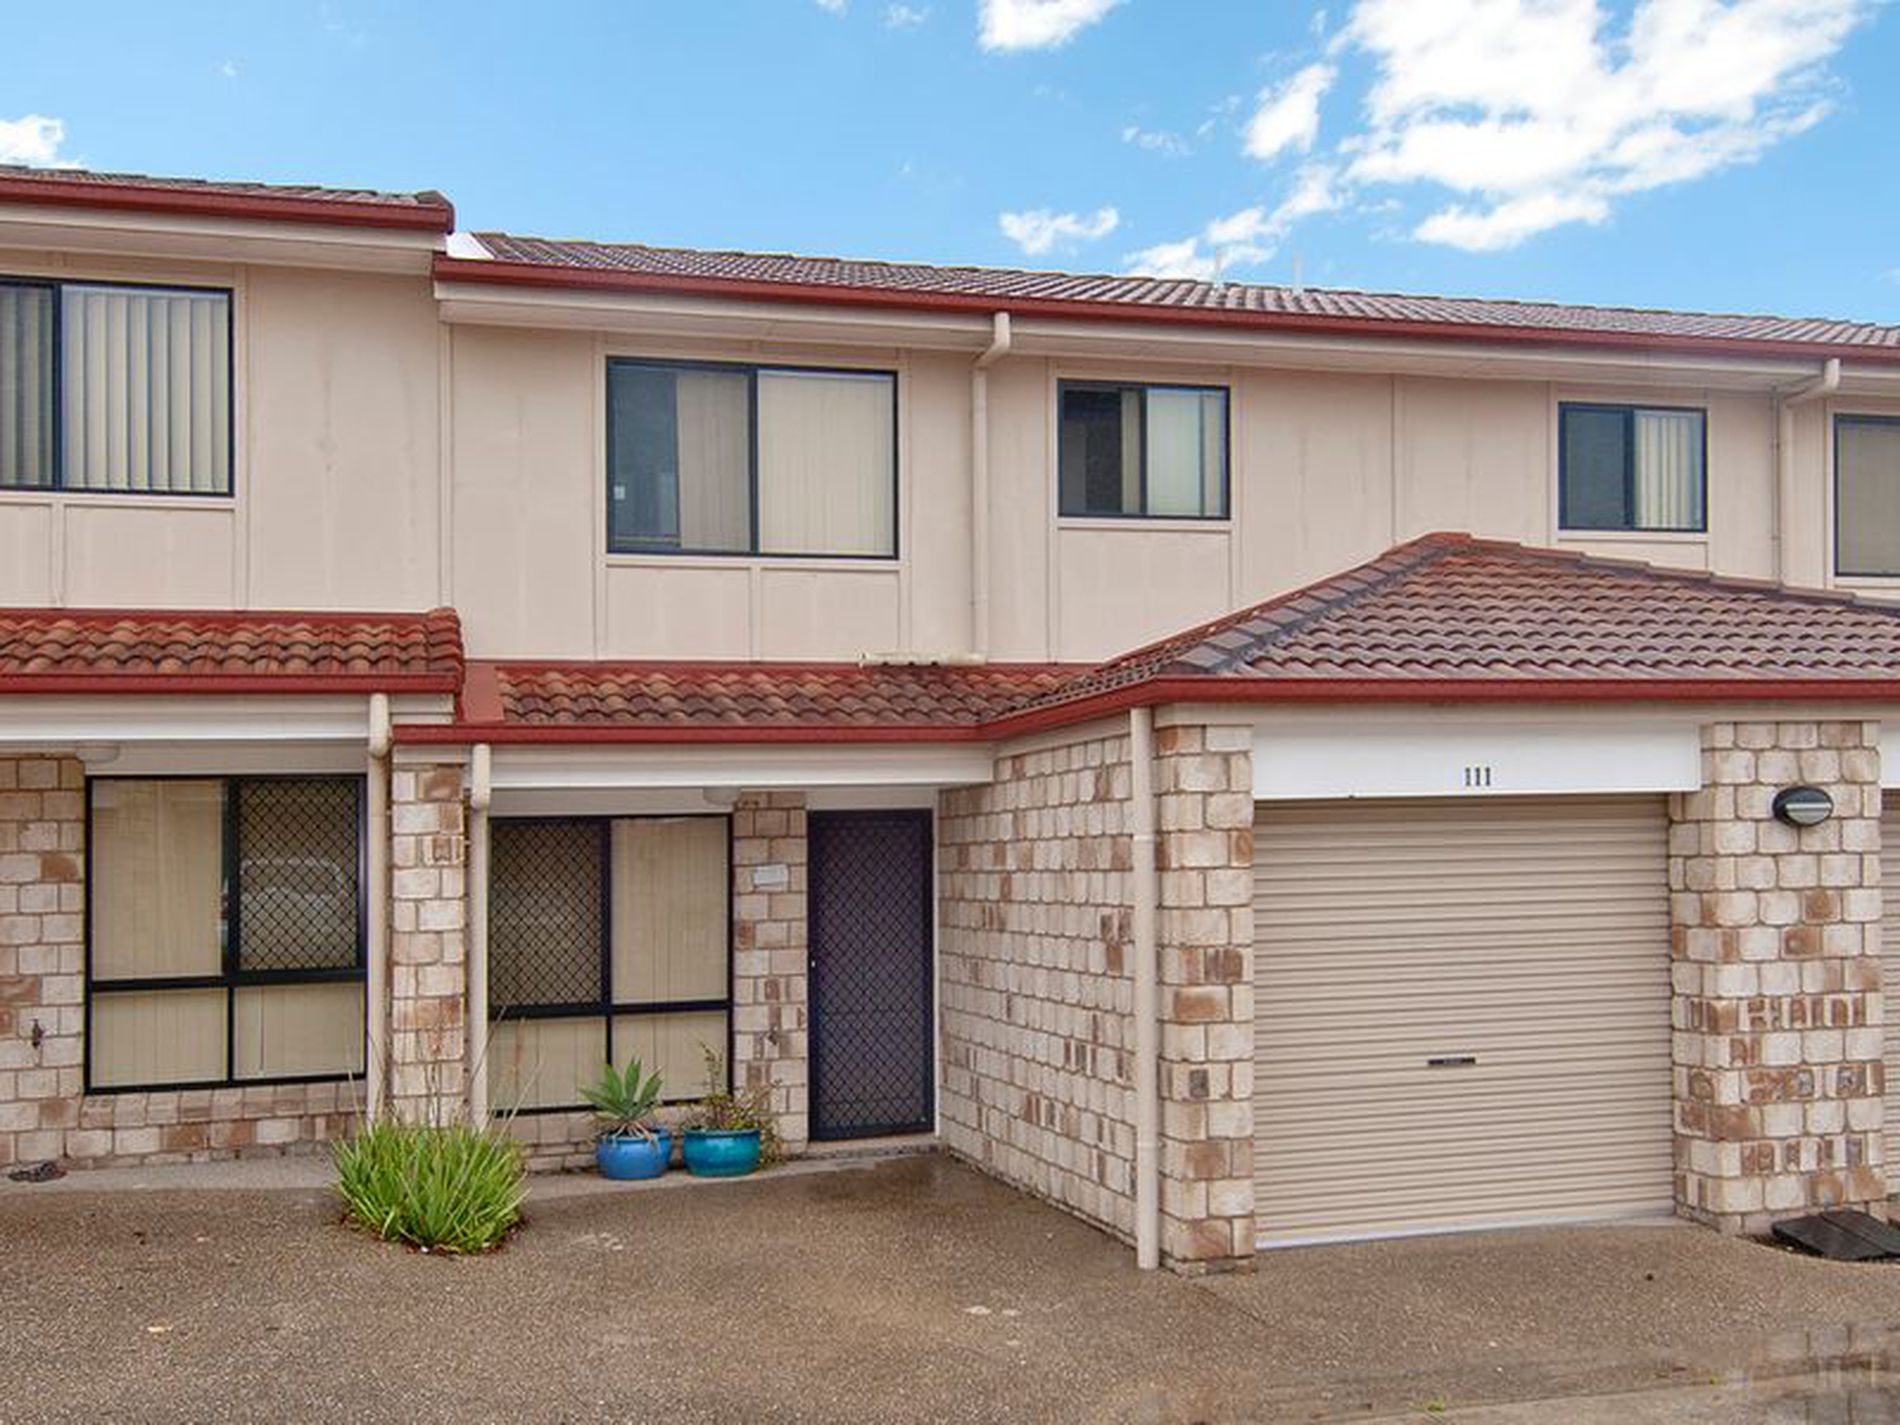 111 / 18 Loganlea Road, Waterford West